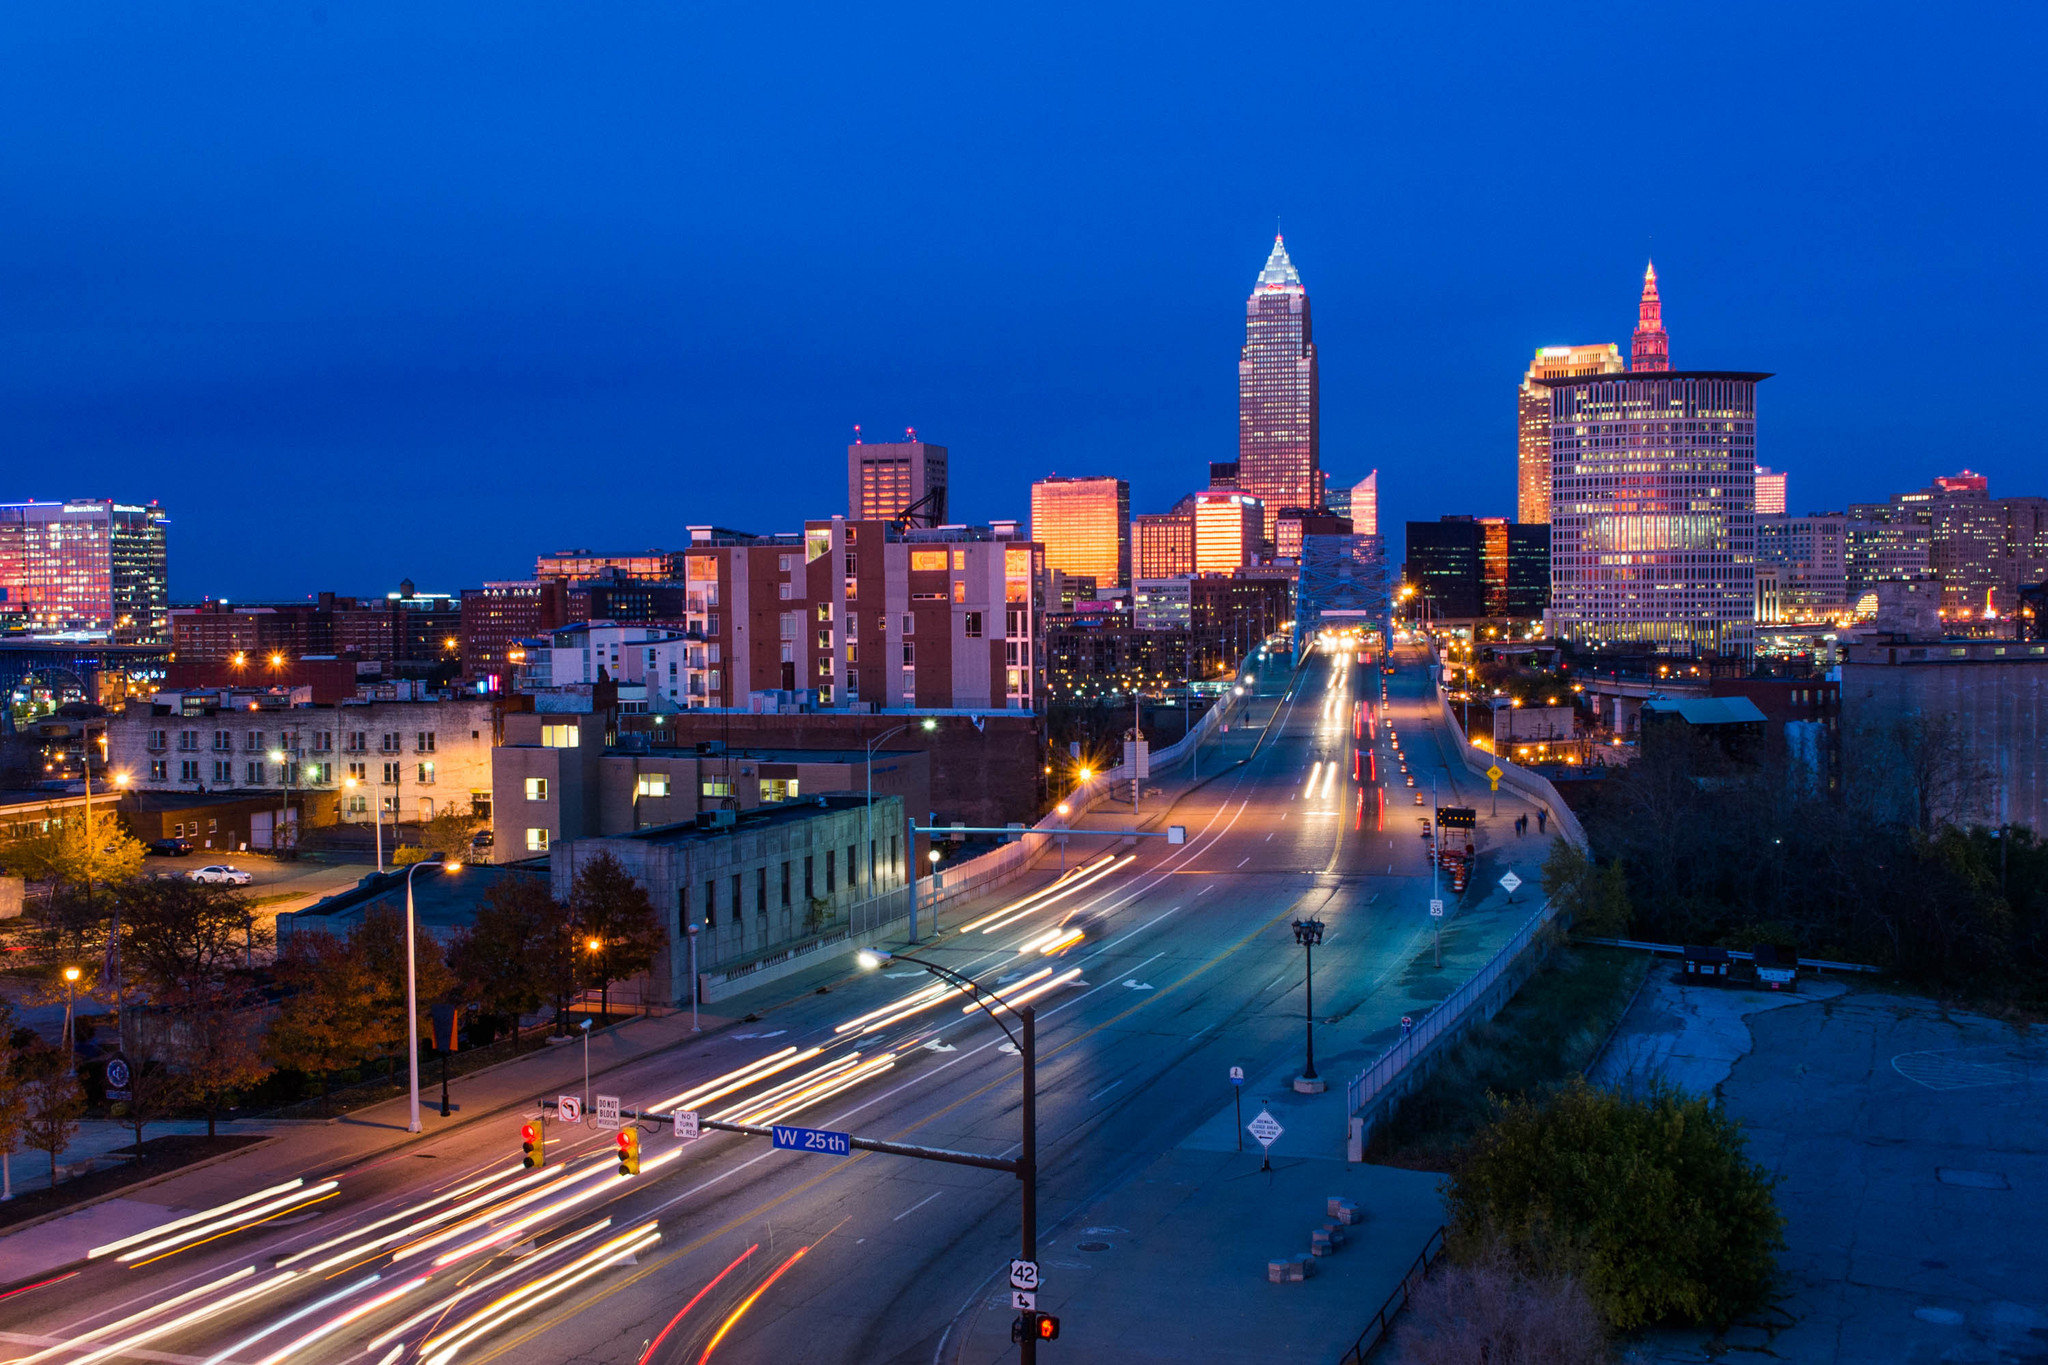 Real Hd Wallpapers 1080p Snavely Group Ties Up Prime Ohio City Corners For 240